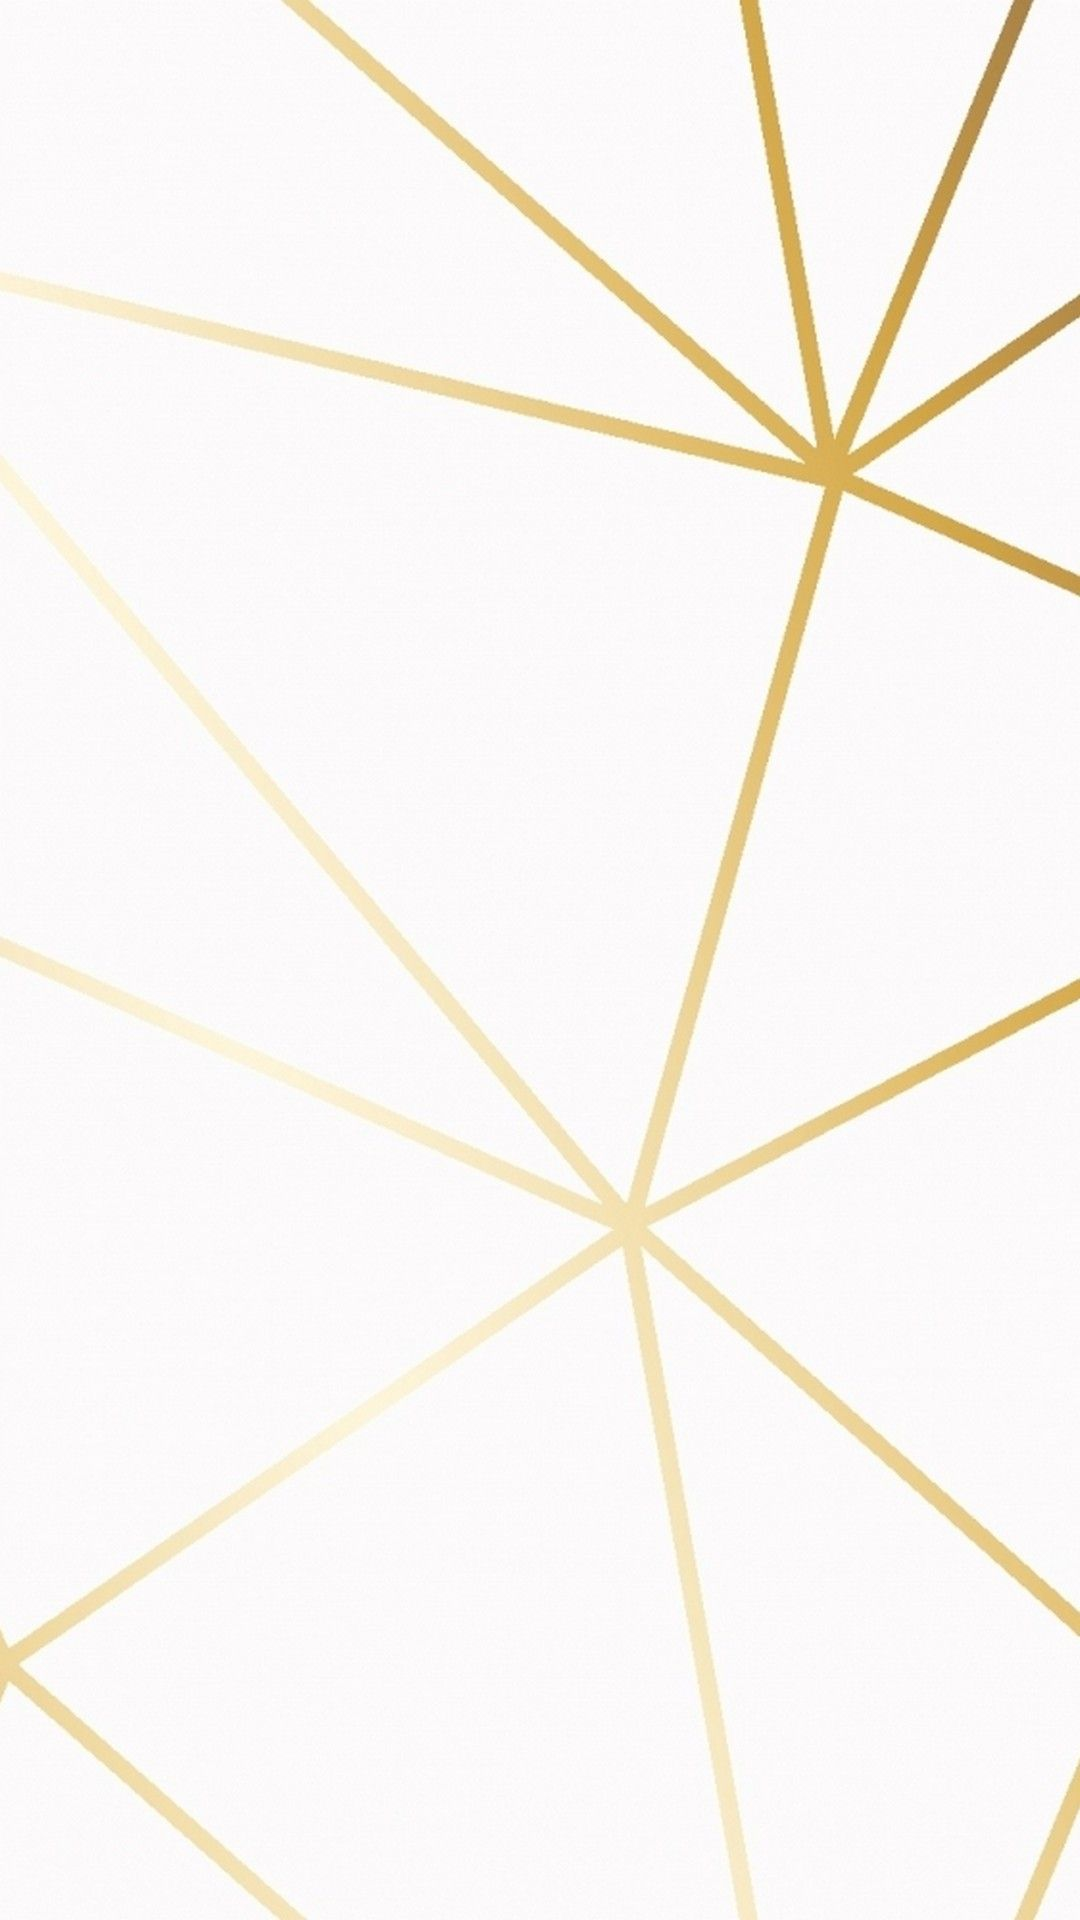 White and Gold Wallpapers - Top Free White and Gold ...